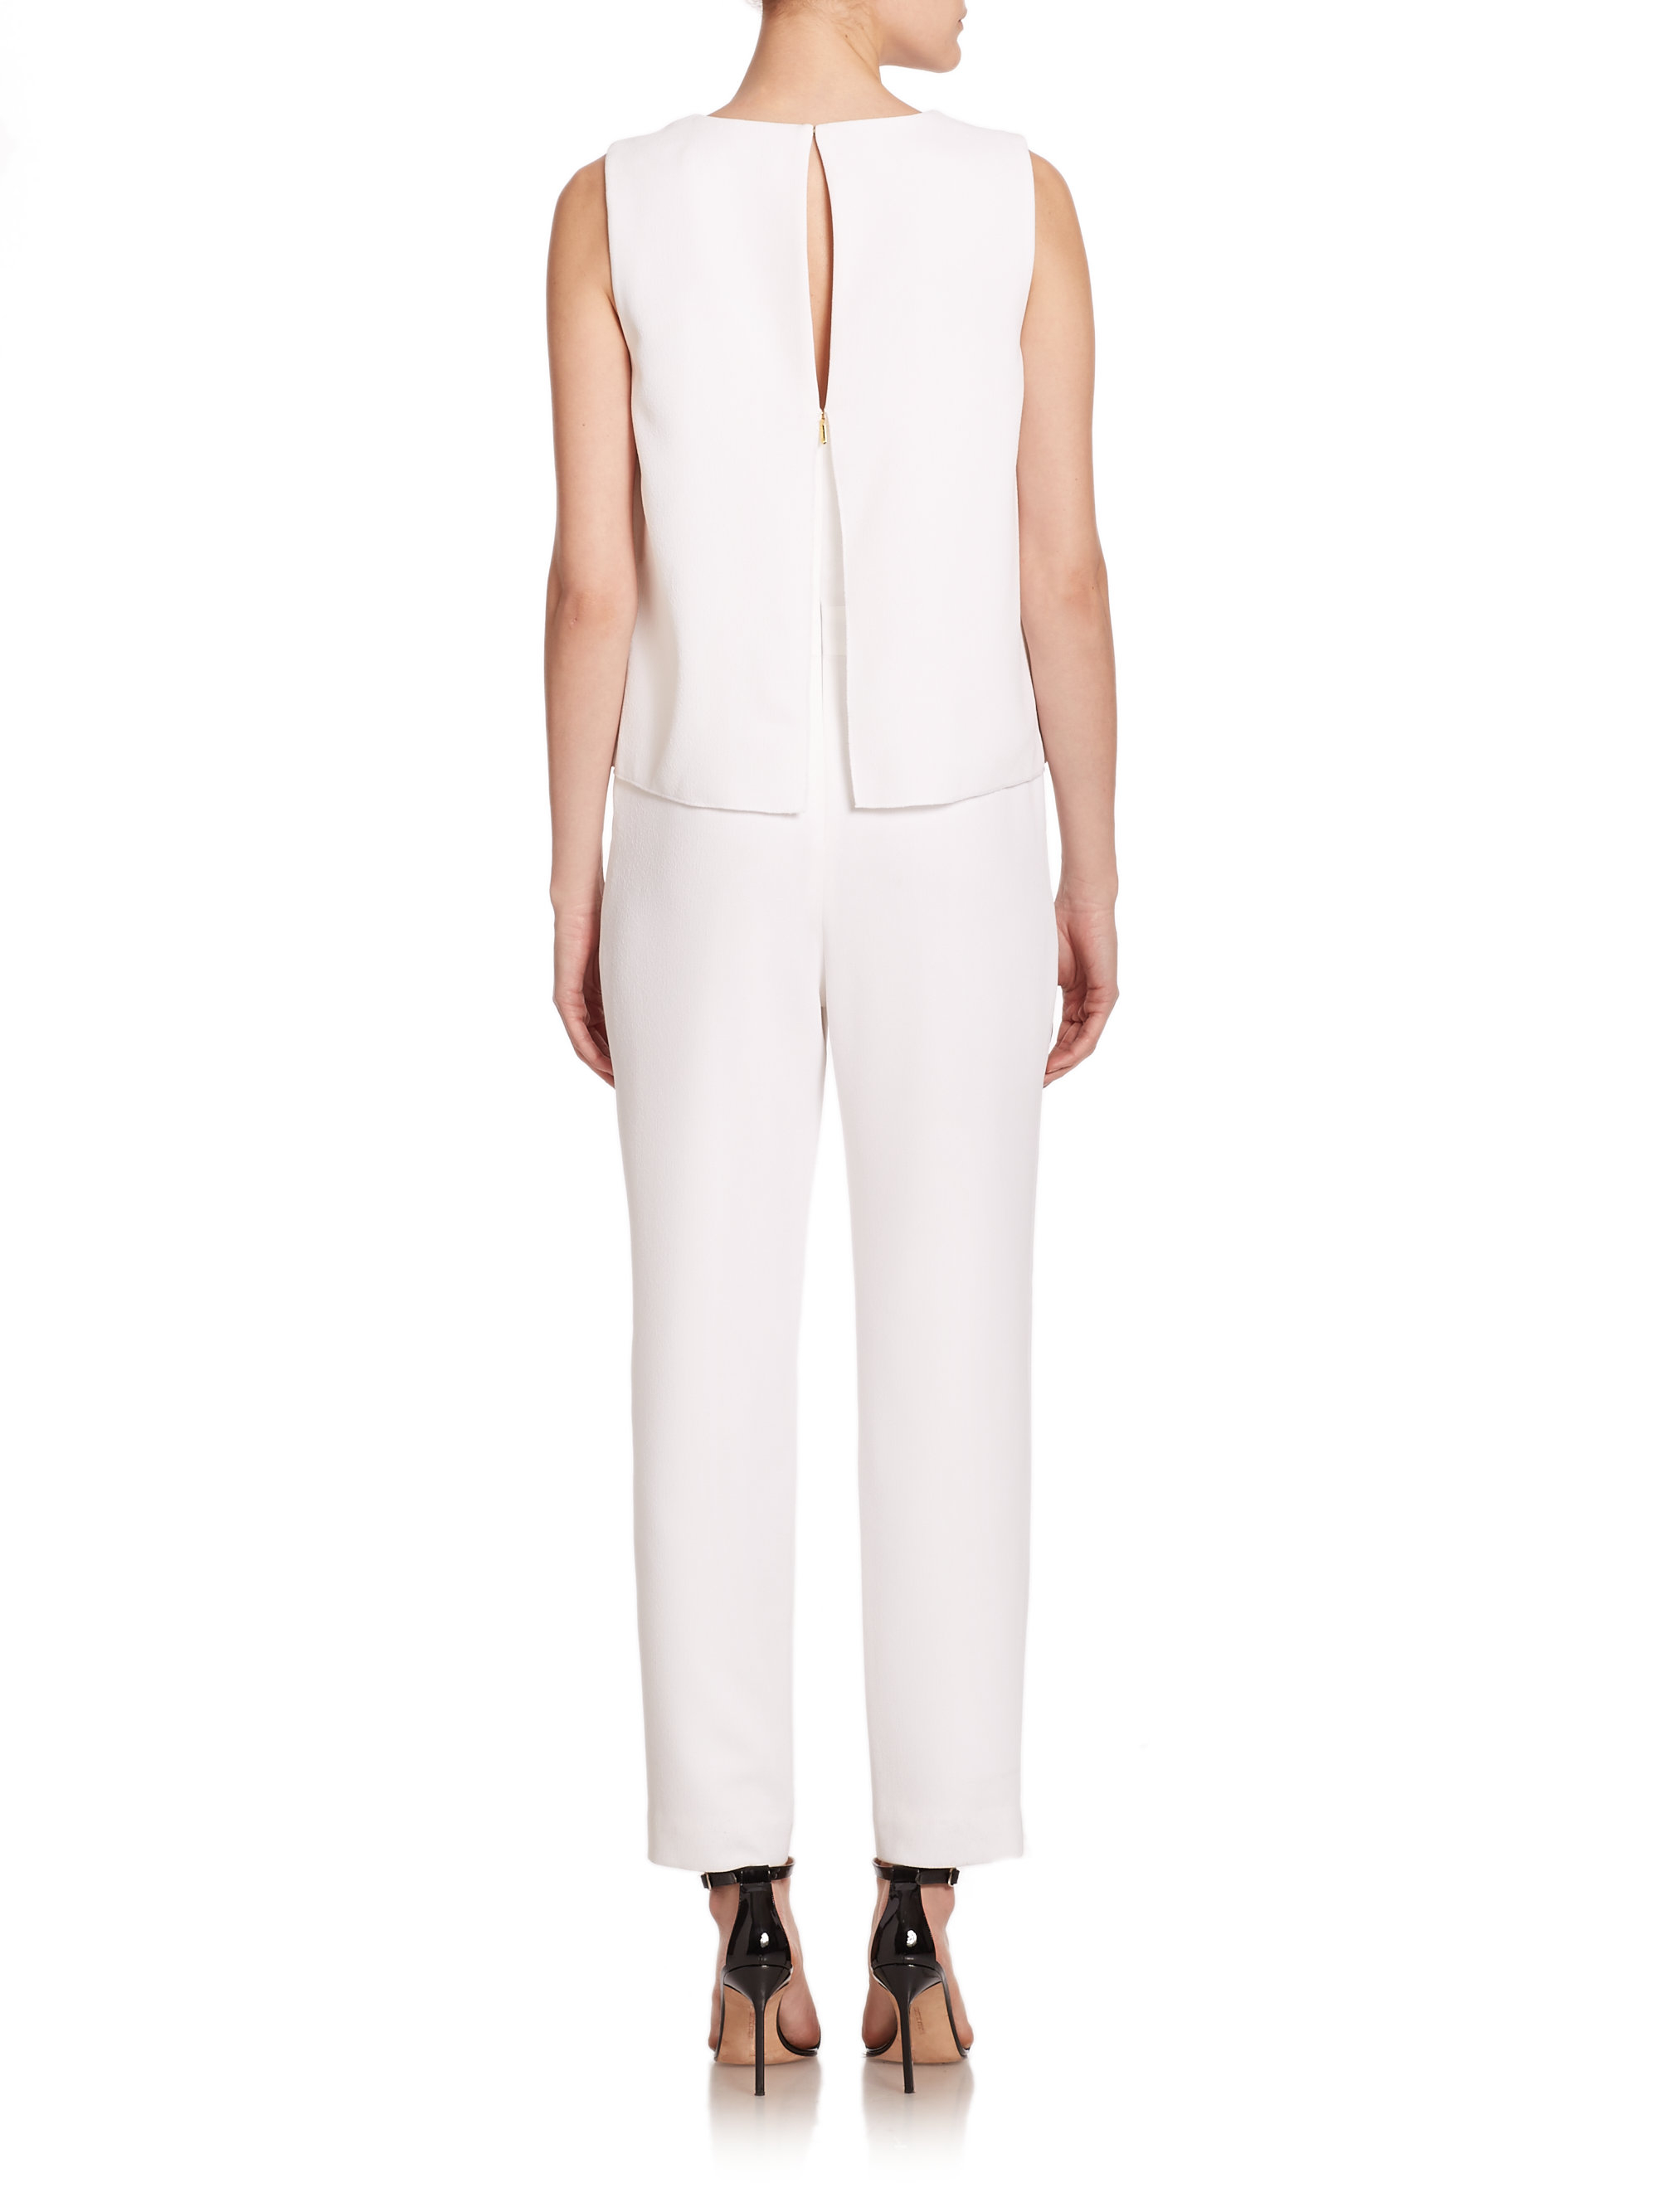 7af672c2e137 Lyst - Trina Turk Crepe Overlay Jumpsuit in White